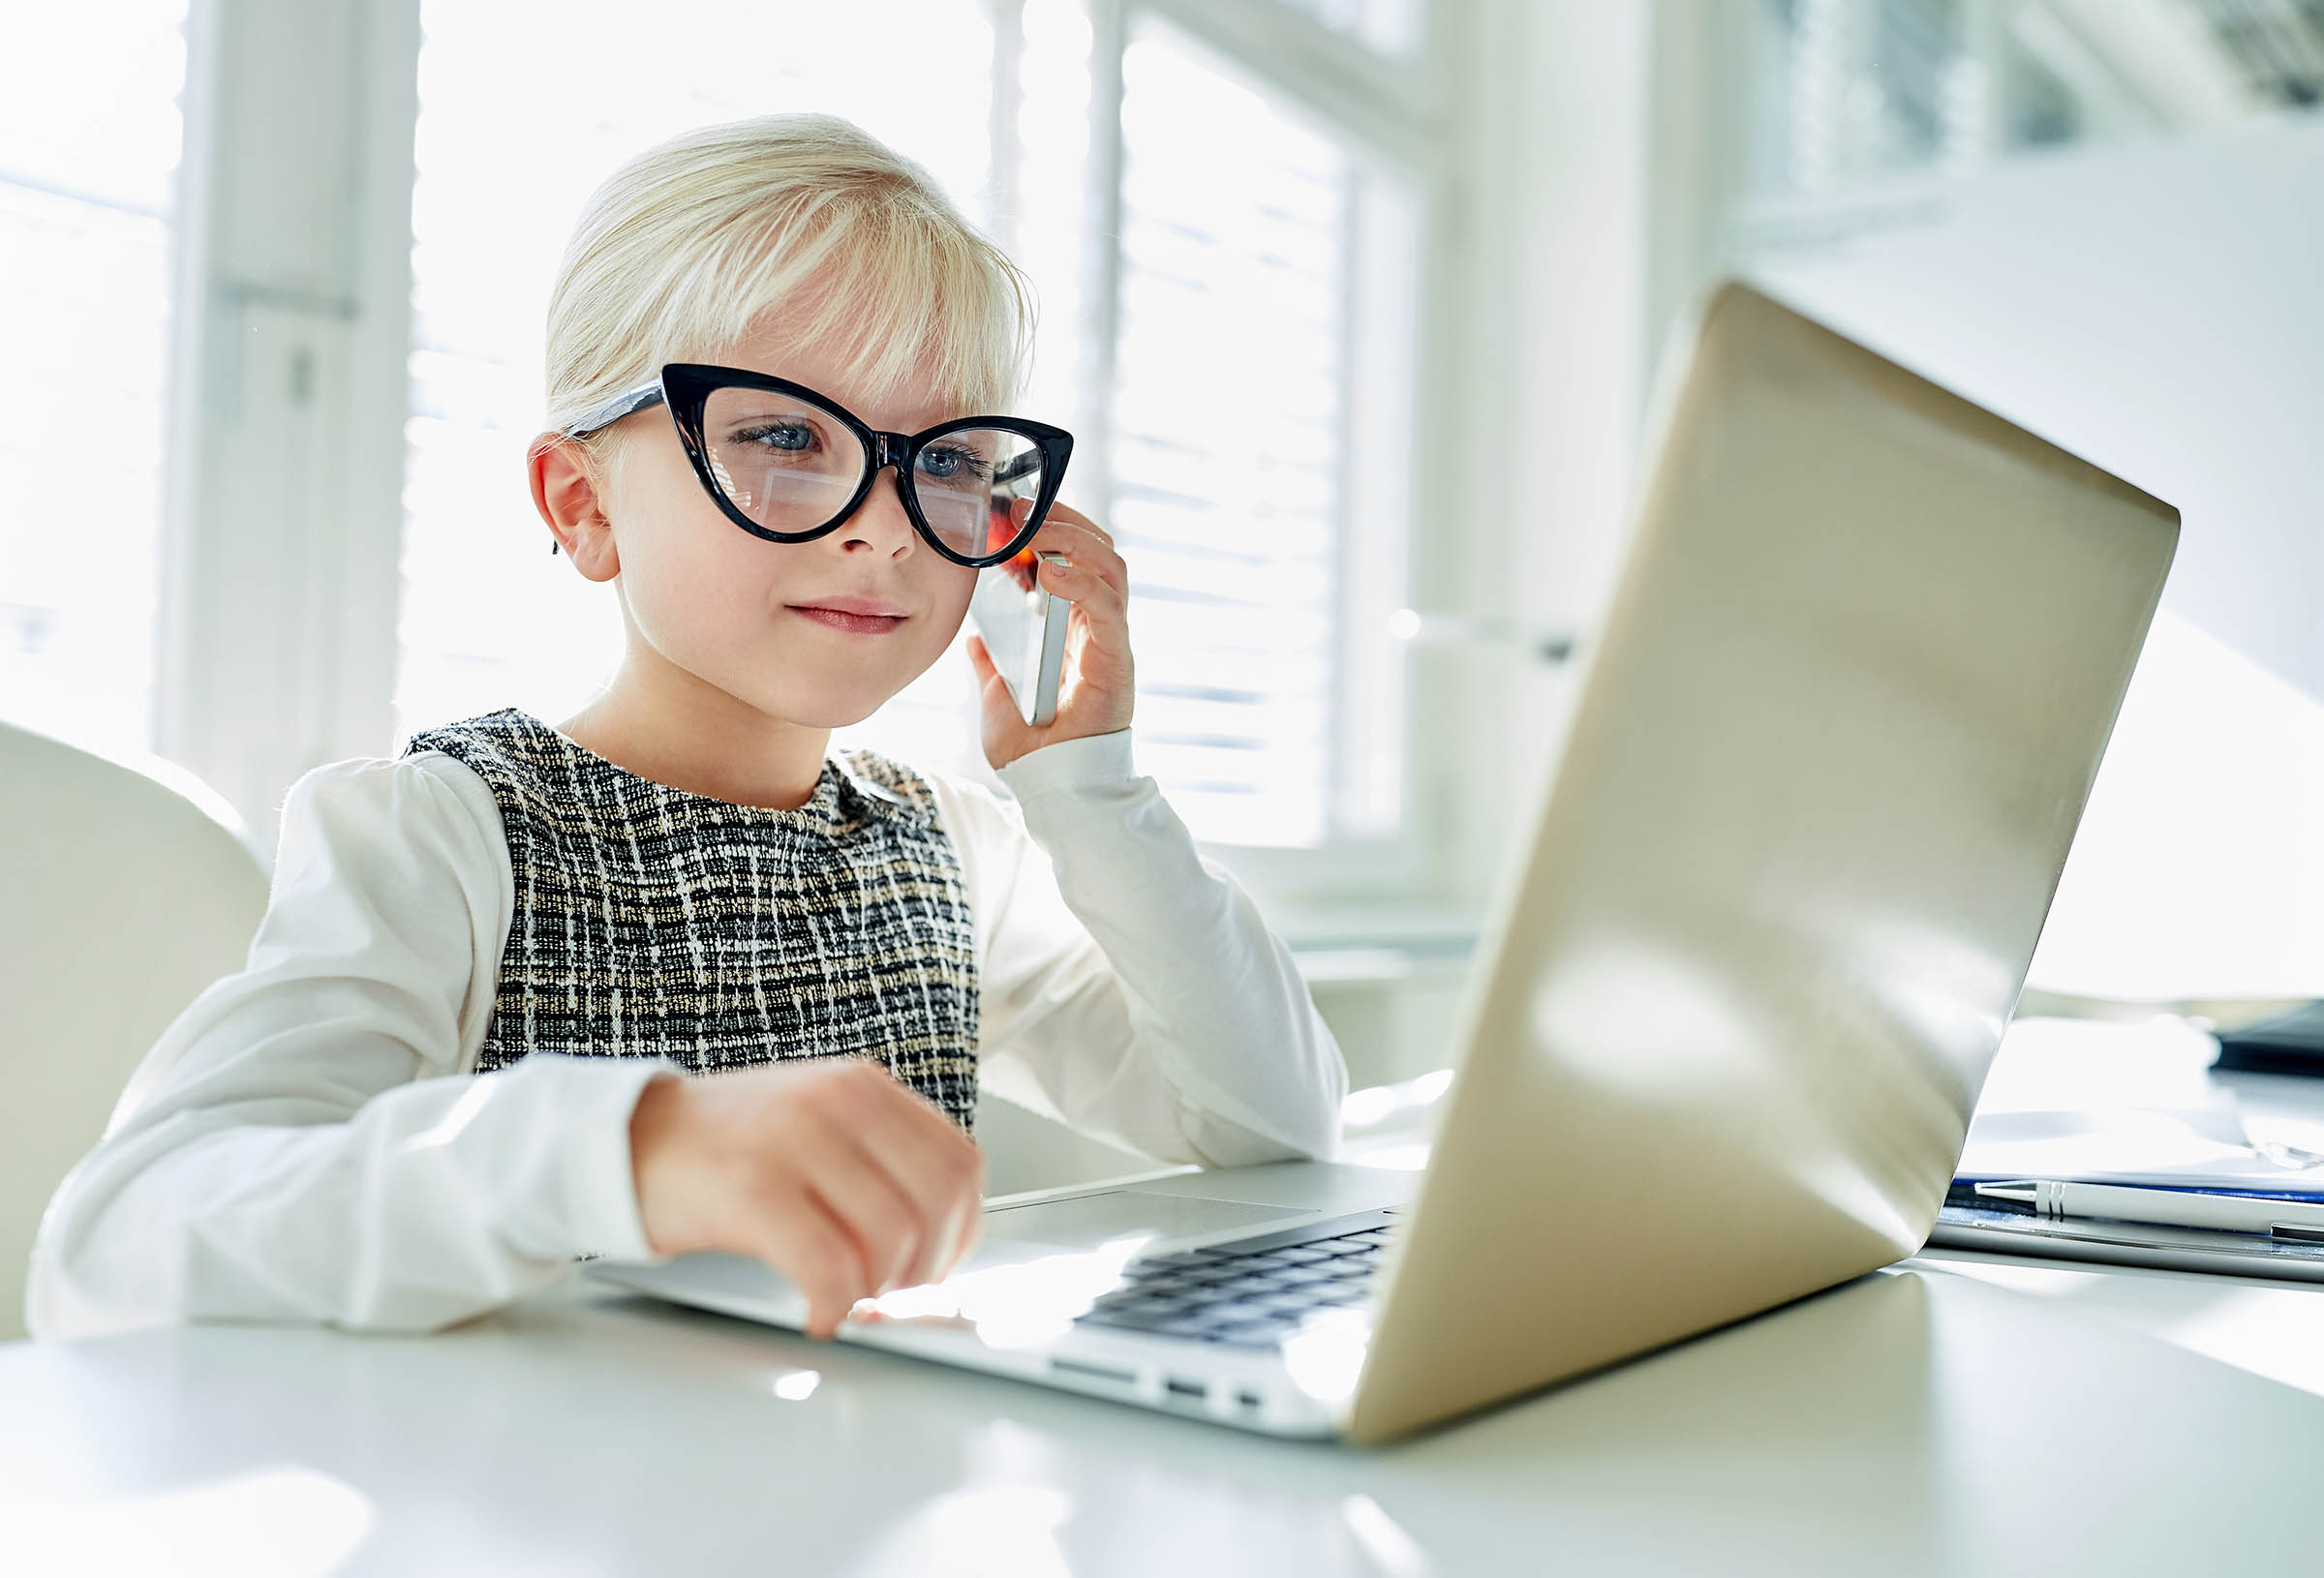 Litttle girl looking at laptop screen with expression of surprised and excitement. Smart, smilling little girl taking notes . Communication in business concept.